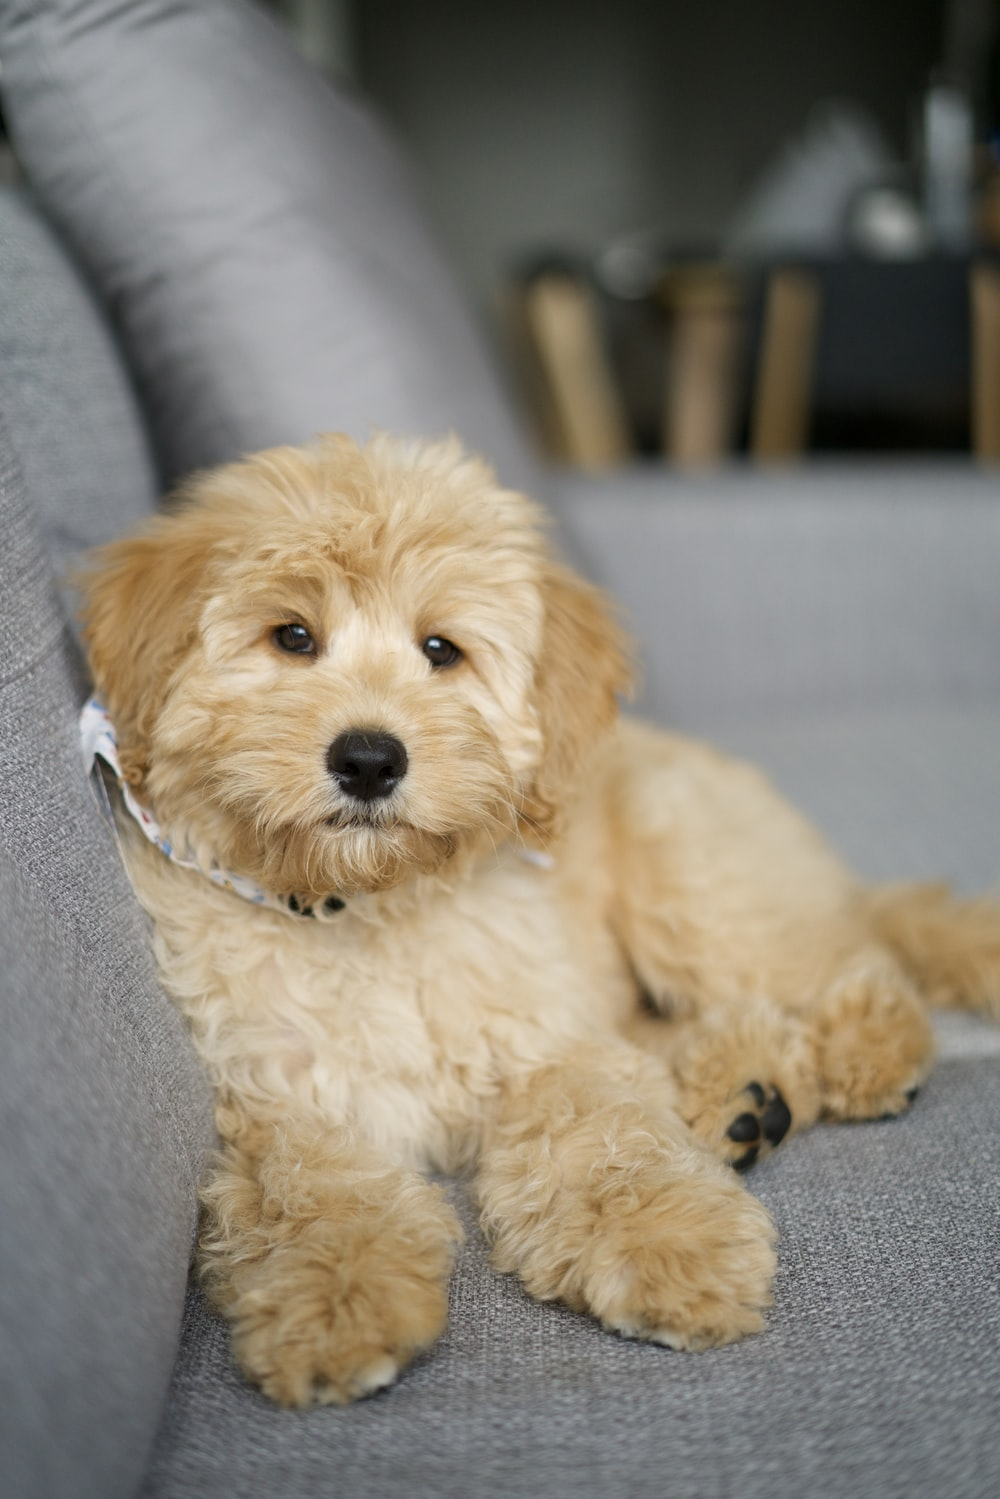 white poodle puppy lying on gray textile